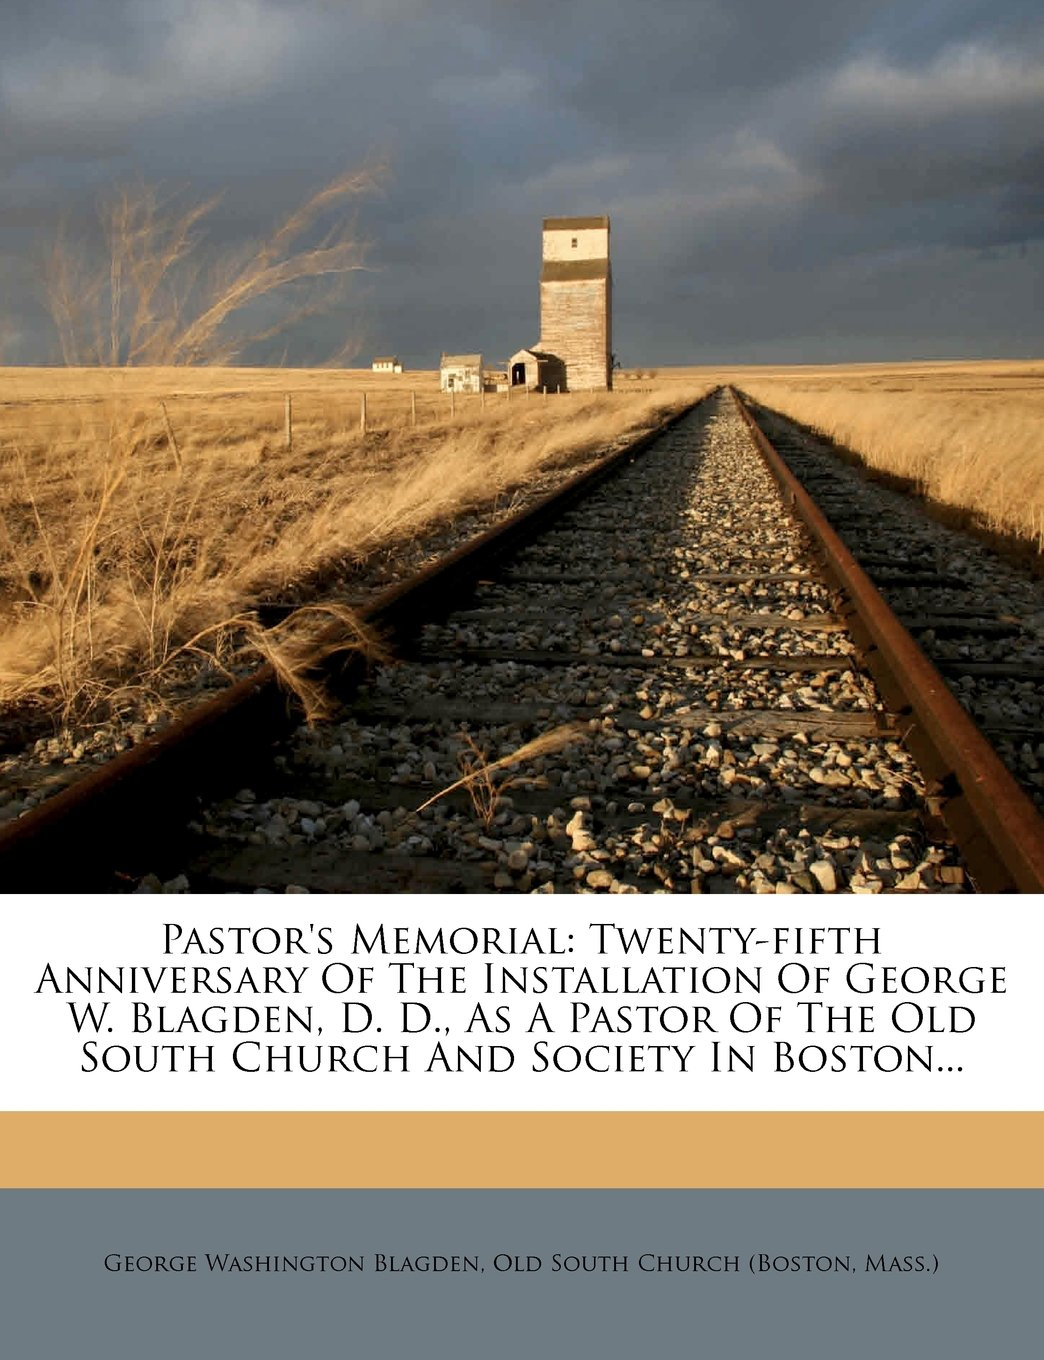 Download Pastor's Memorial: Twenty-fifth Anniversary Of The Installation Of George W. Blagden, D. D., As A Pastor Of The Old South Church And Society In Boston... pdf